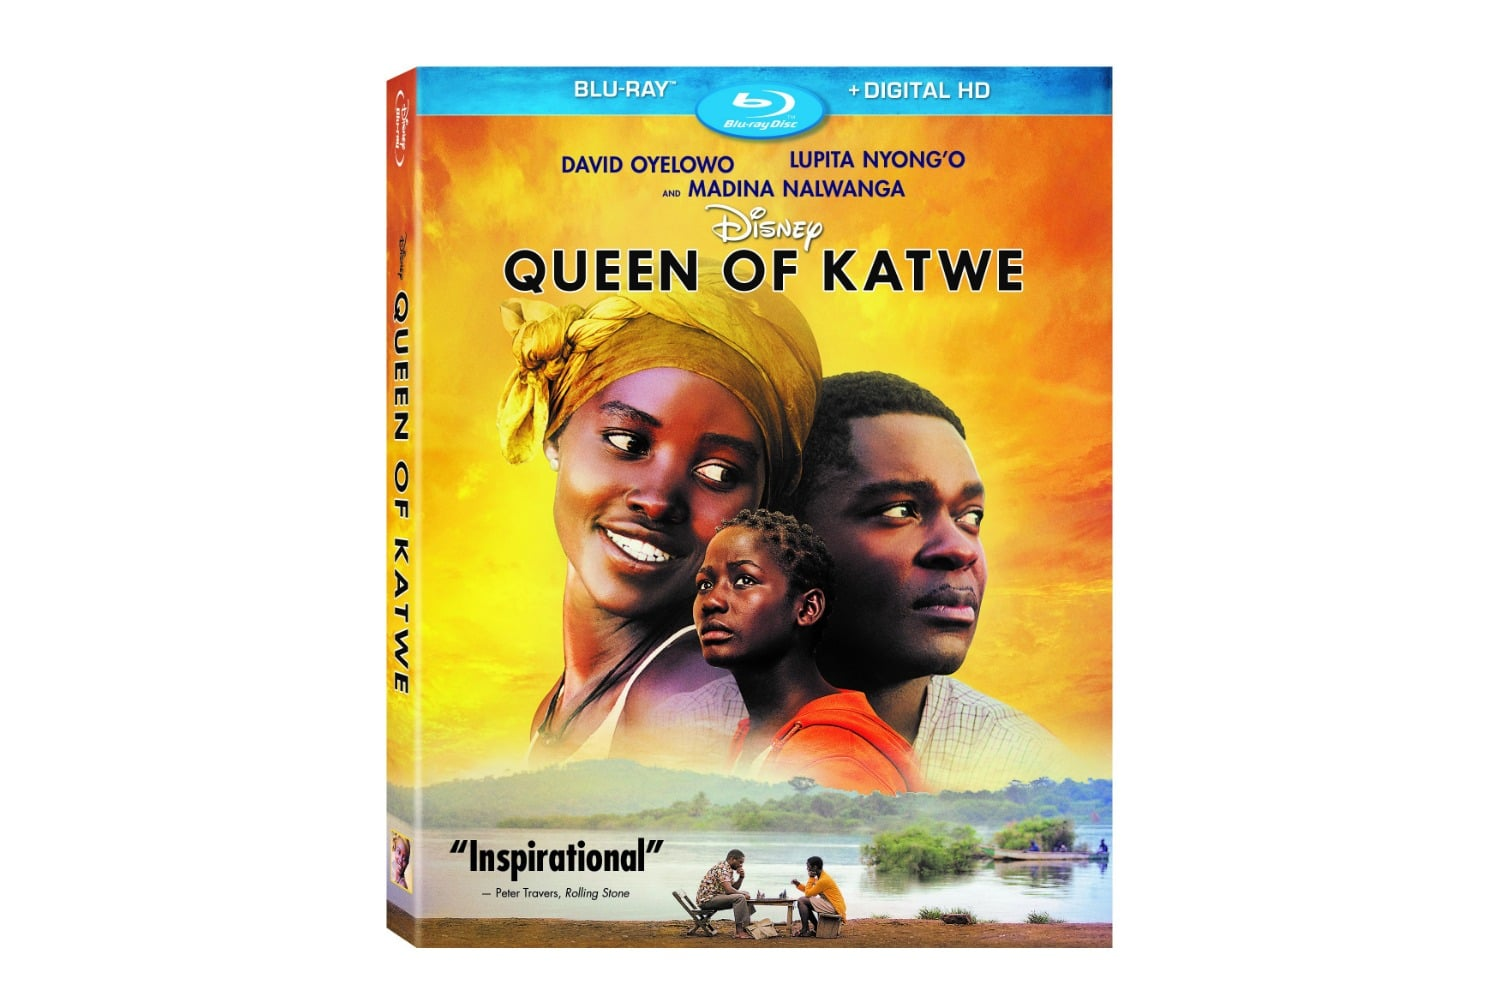 Queen Of Katwe On Digital Hd Dvd And Blu Ray As The Bunny Hops